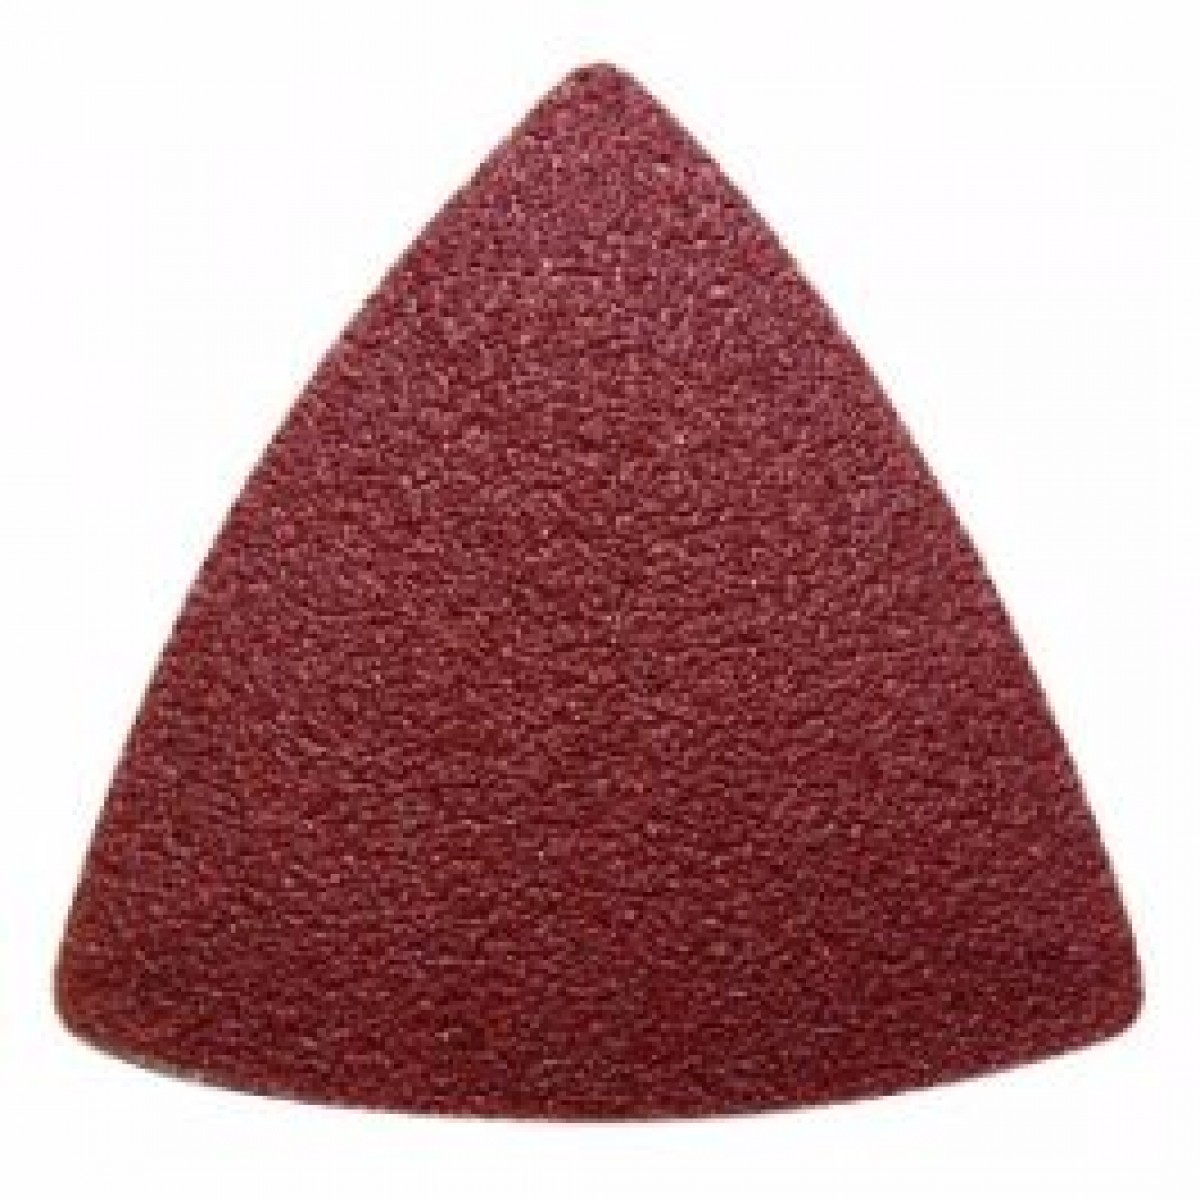 Hook And Loop Sandpaper >> 40 Grit Triangular Sanding Sheets - 5 Pack